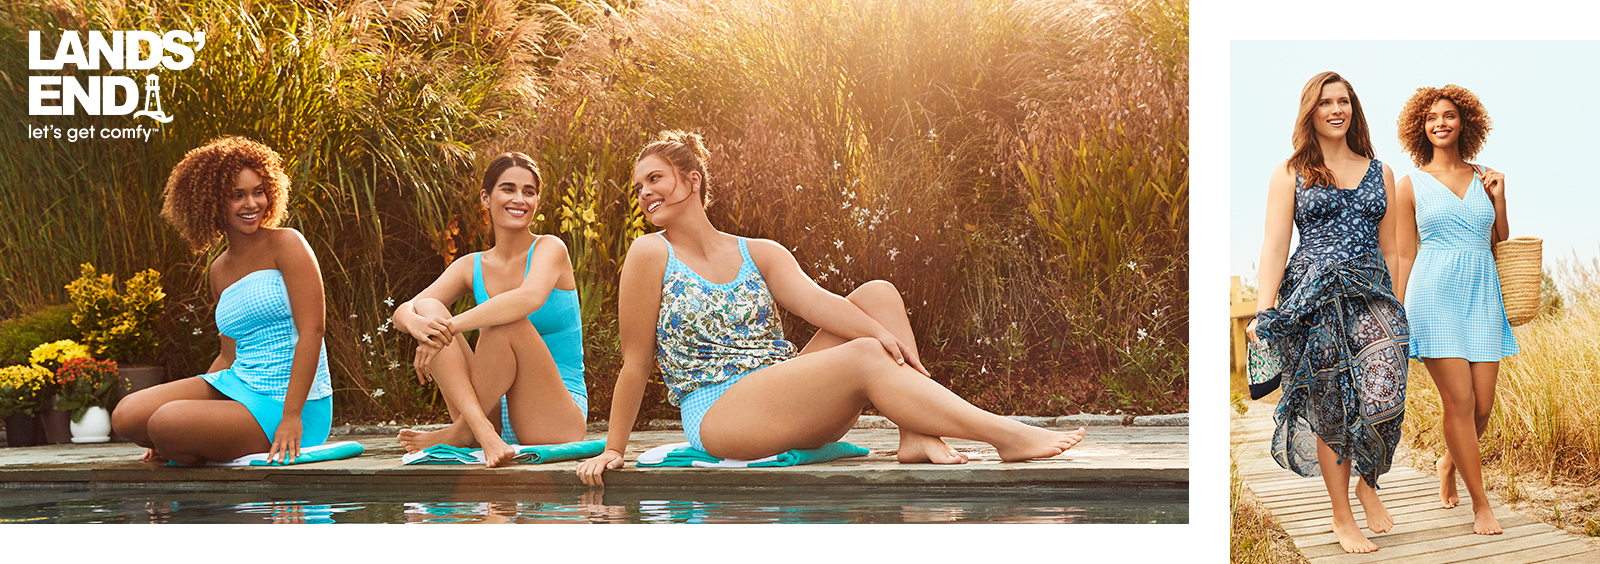 How Do I Find the Right Size Swimsuit for Me?